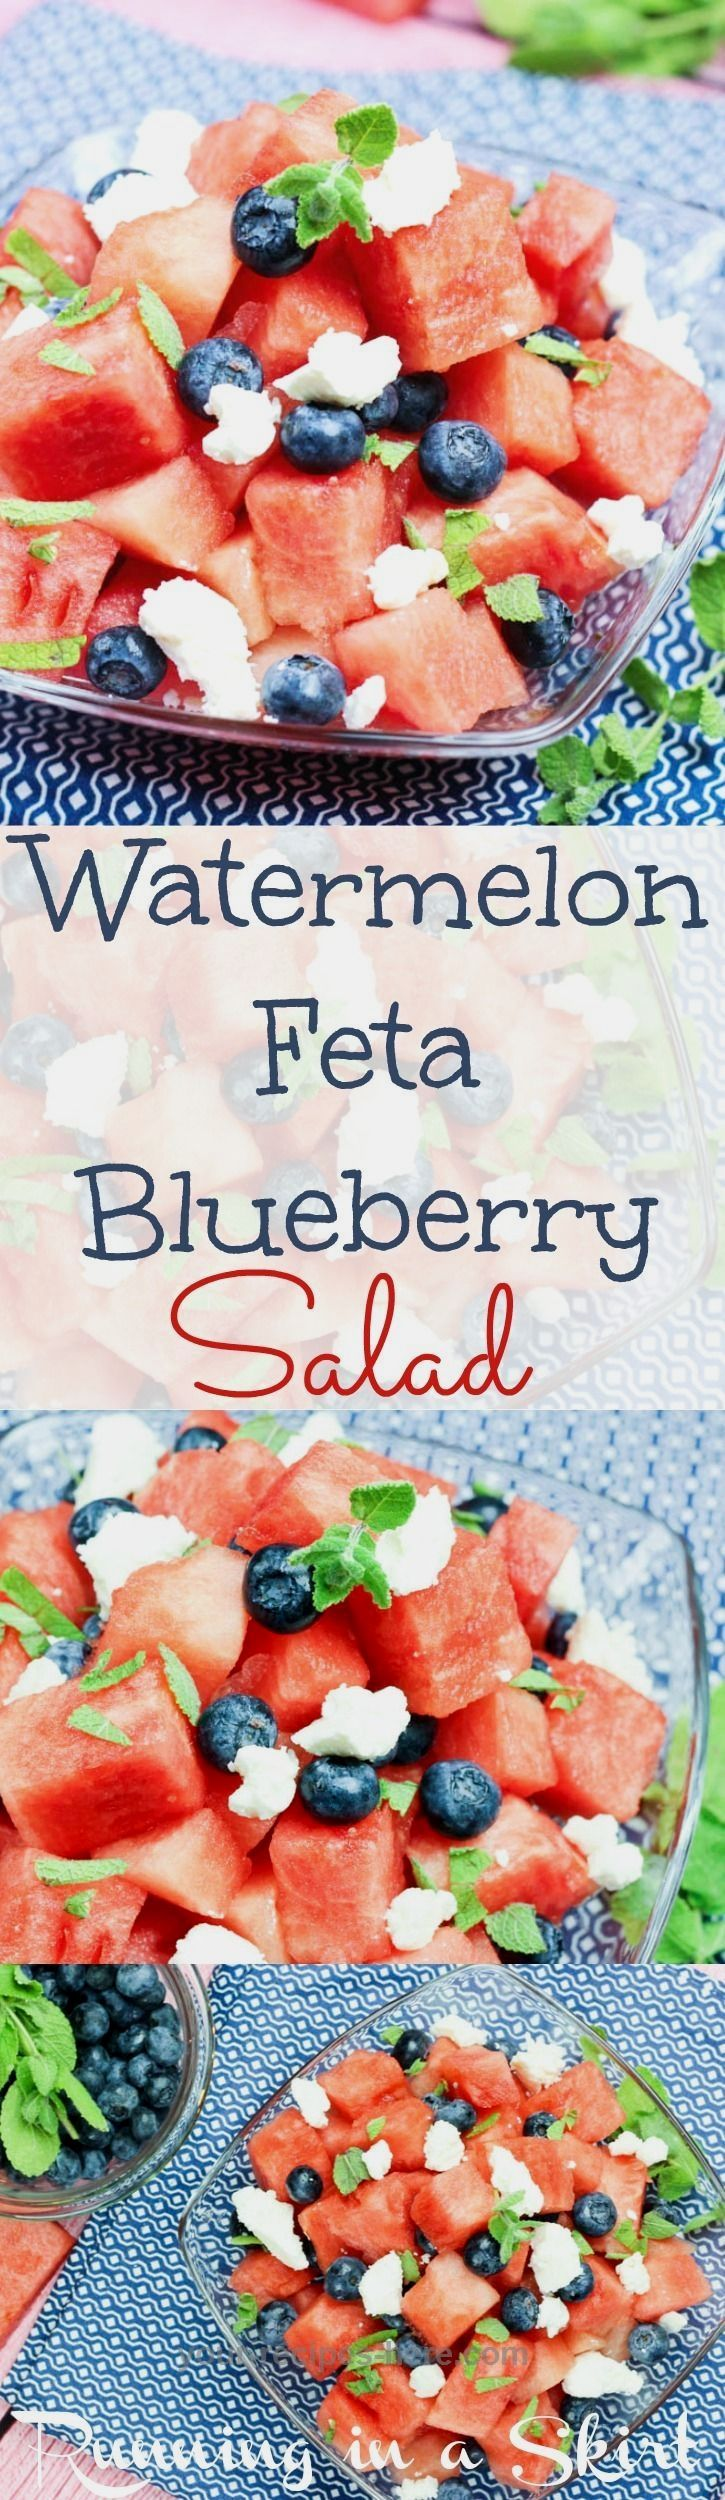 Watermelon Salad with feta and blueberries recipe. With honey lime dressing and mint. The best simple and easy salad for summer parties. Perfect red, white and blue food idea for 4th of July Food, Memorial Day or Labor Day. Healthy, fun and oh so sweet! / Running in a Skirt #labordayfoodideas Watermelon Salad with feta and blueberries recipe. With honey lime dressing and mint. The best simple and easy salad for summer parties. Perfect red, white and blue food idea for 4th of July Food, Memorial #labordayfoodideas